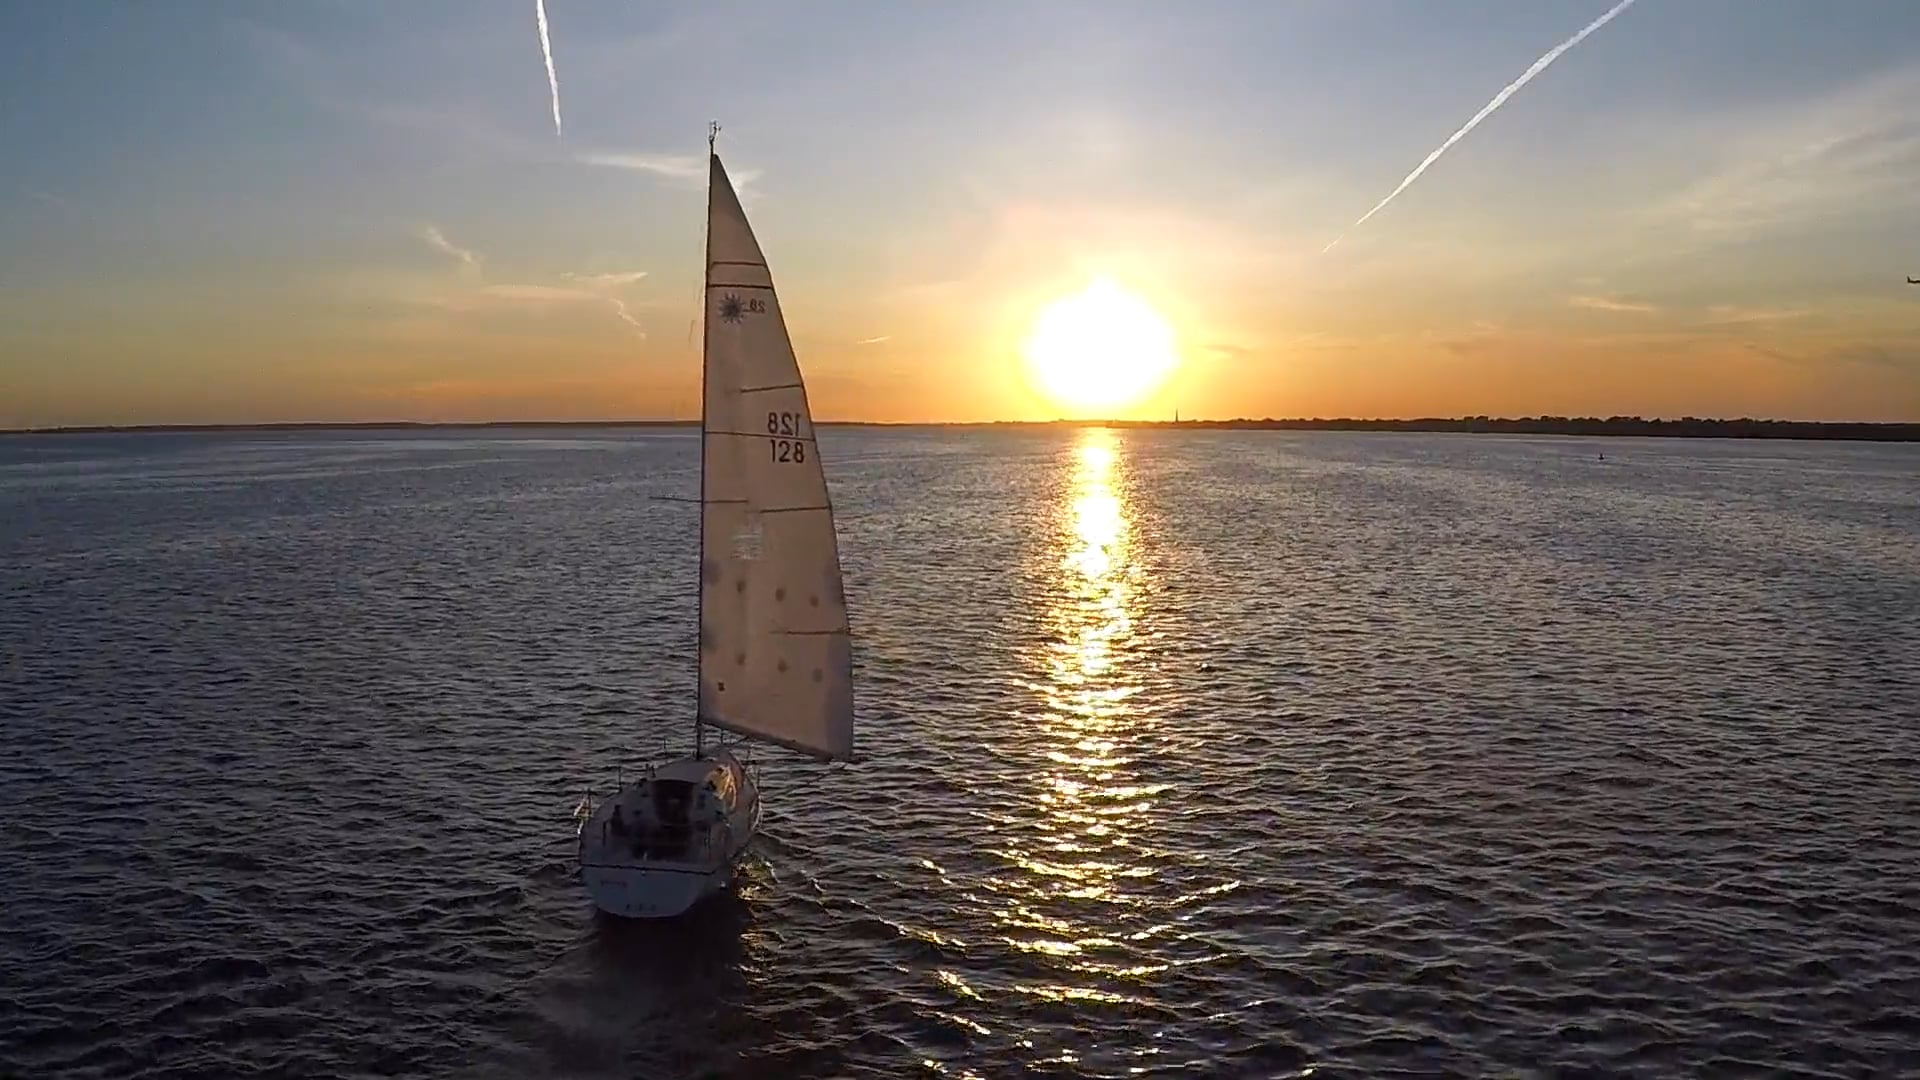 Aerial Sailboat at Sunset - Multicut